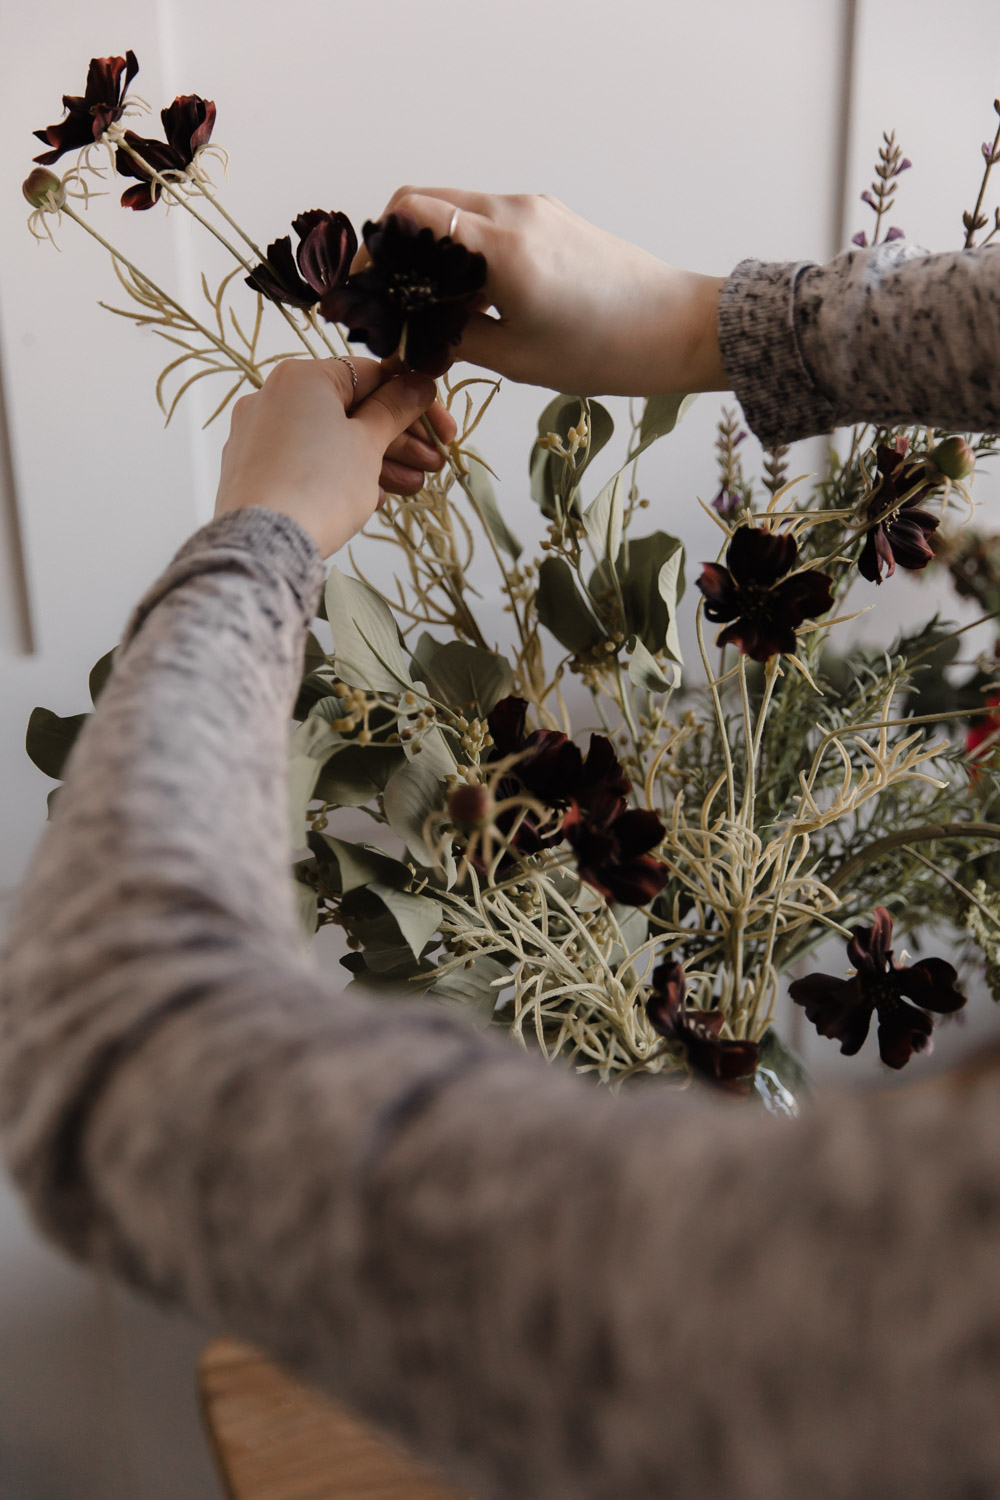 Flower arranging with fake flowerrs